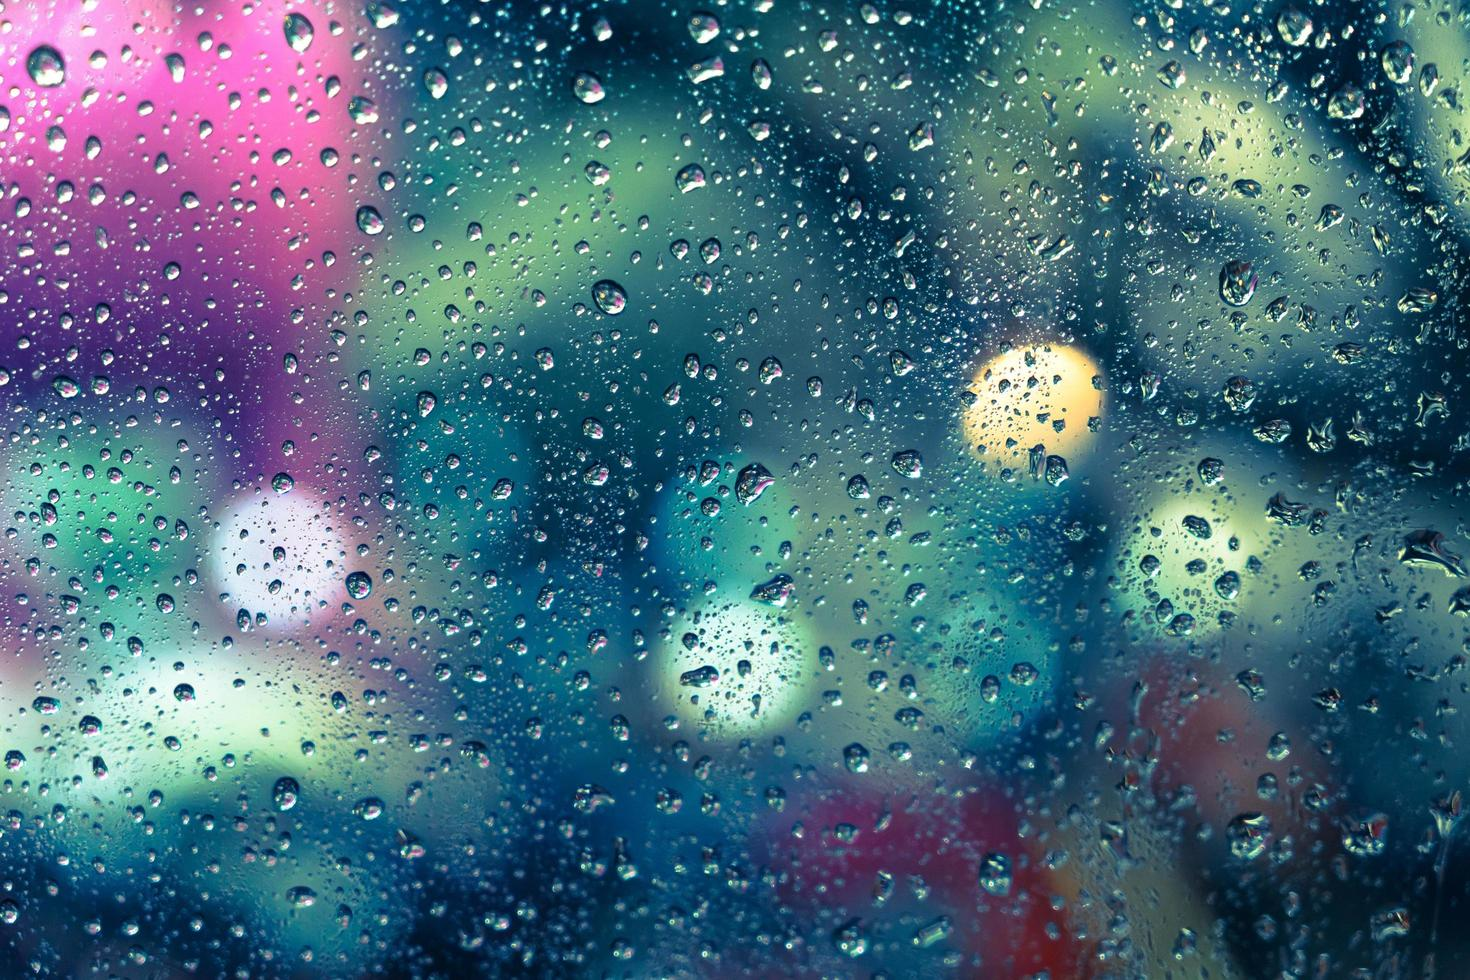 Rain drops on the window with colorful bokeh photo